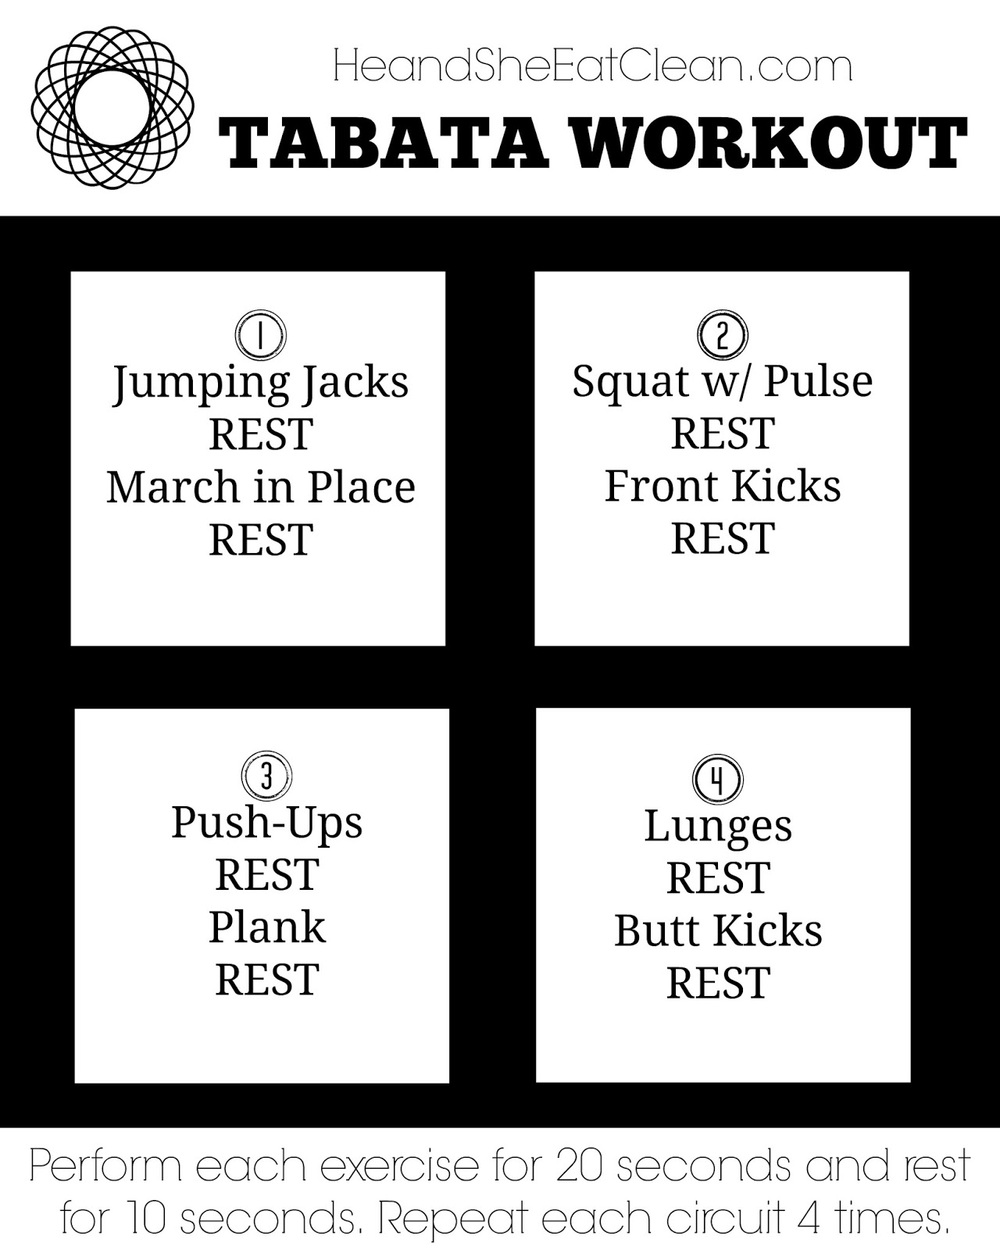 tabata-workout-he-and-she-eat-clean-fitness-circuit-training-diet-exercise-lose-weight-tone-healthy.jpg